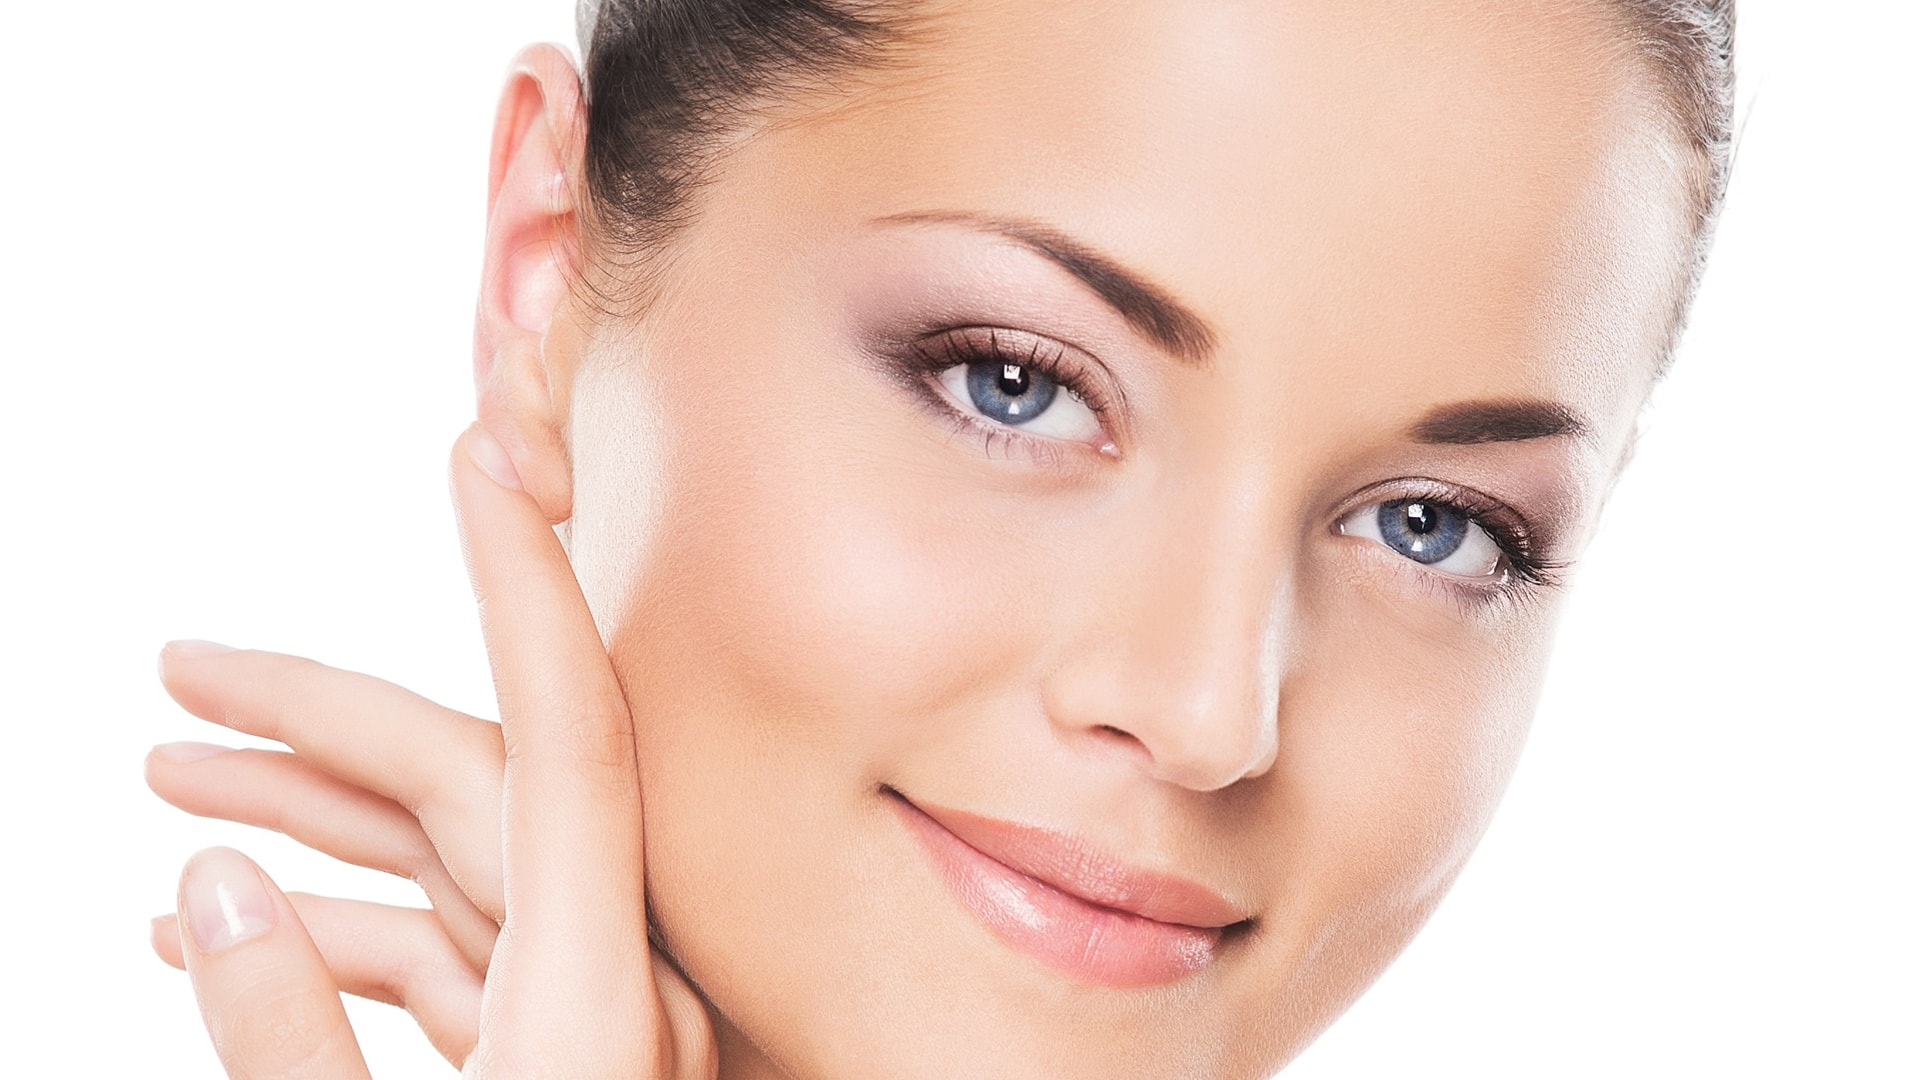 Skin Rejuvenation with the Fractional CO2 Laser